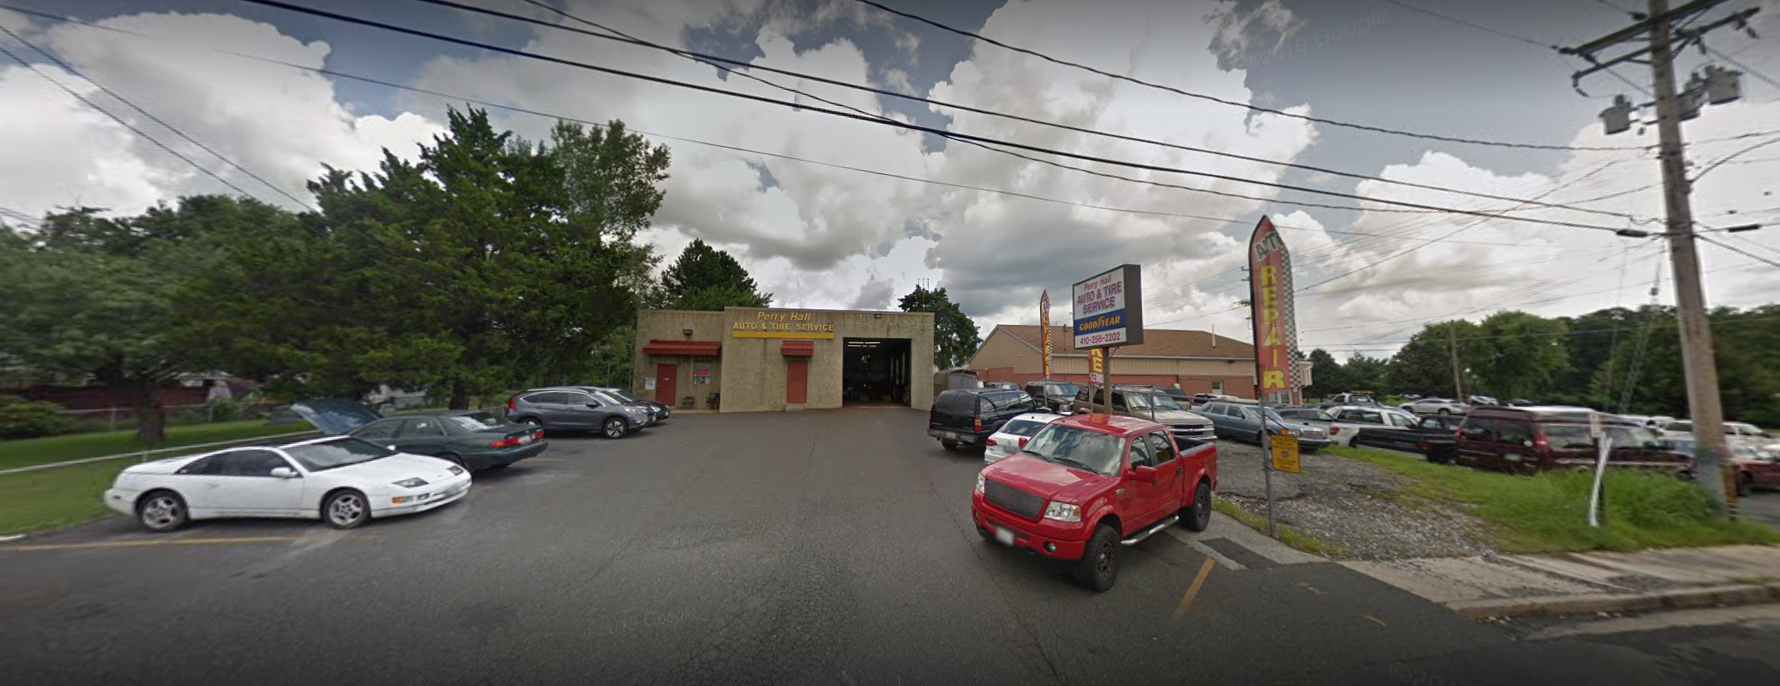 Perry Hall Auto Repair